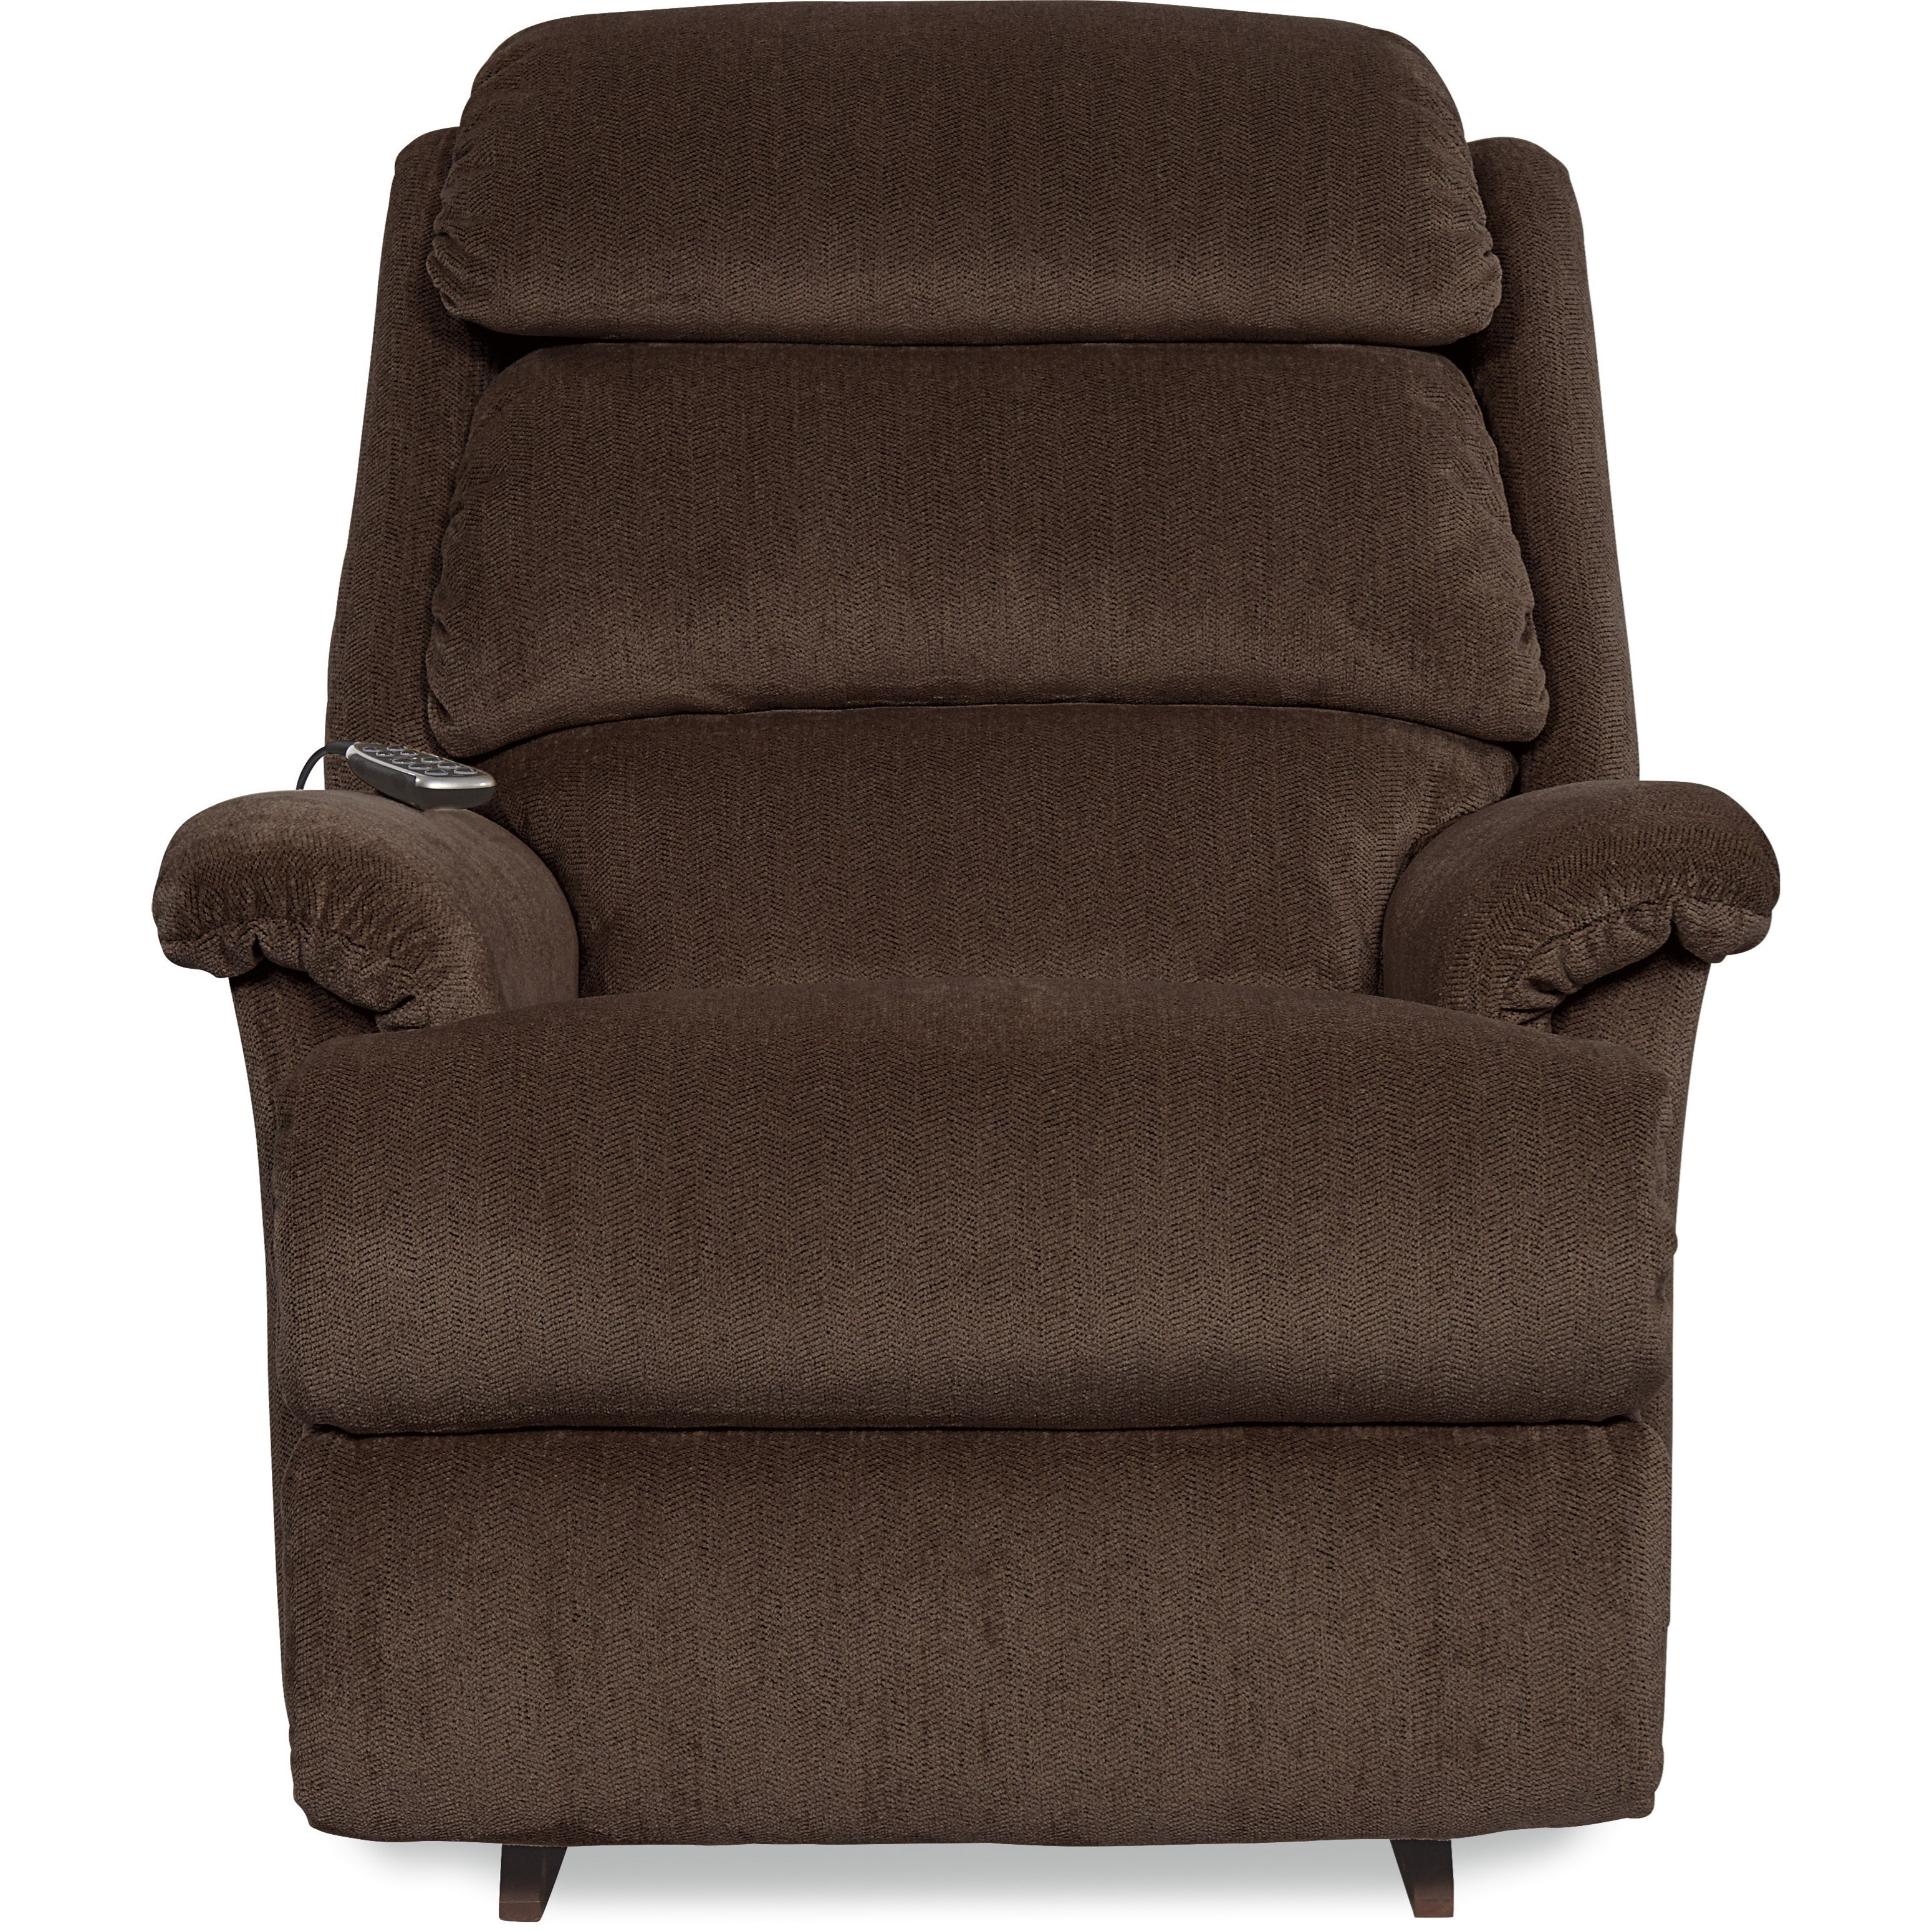 Astor Power Rocking Recliner w/ Headrest & Lumbar by La-Z-Boy at Fisher Home Furnishings